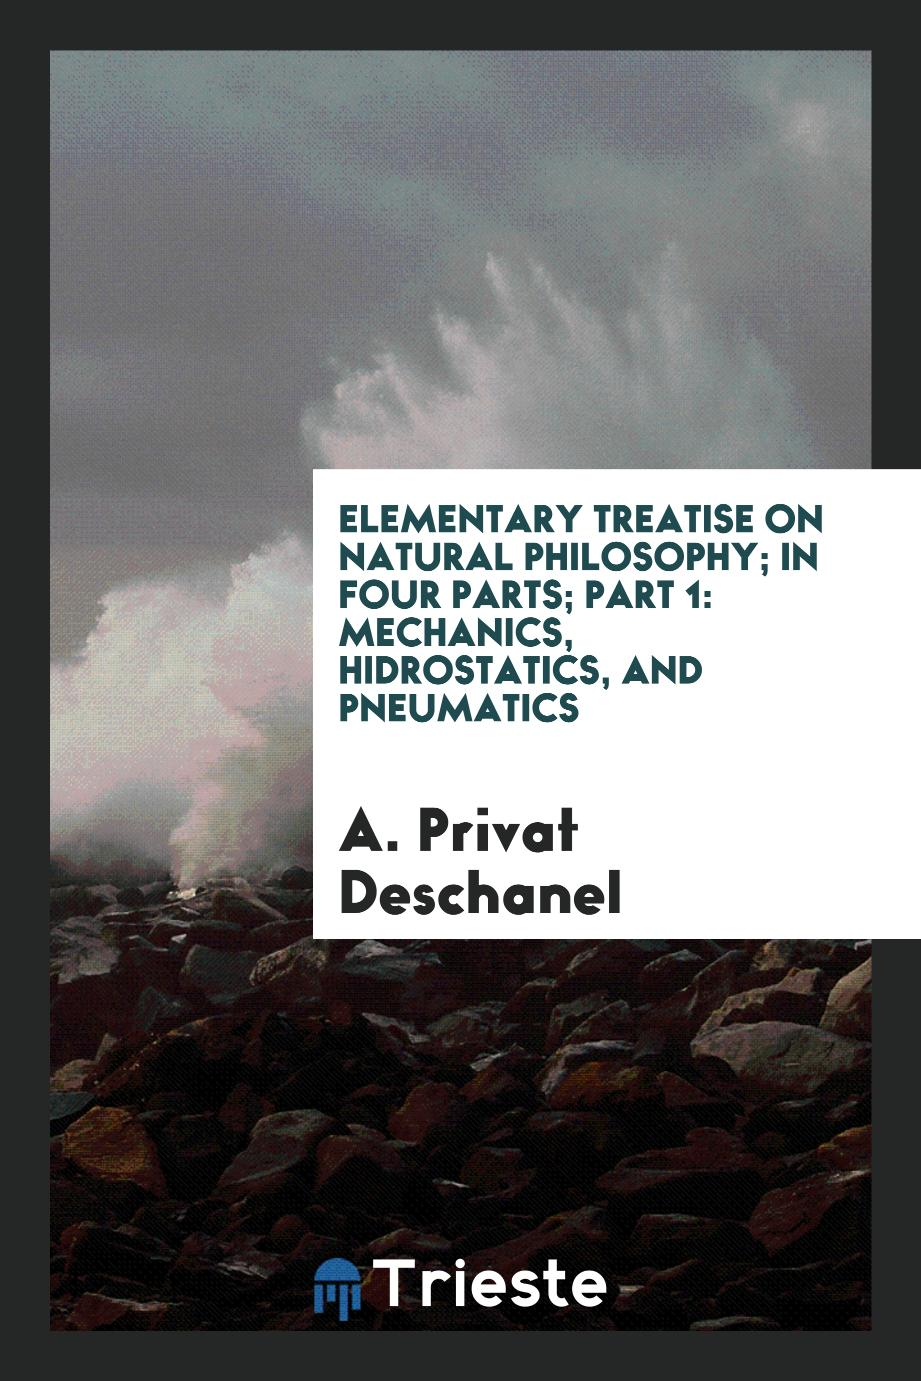 Elementary treatise on natural philosophy; in four parts; Part 1: Mechanics, Hidrostatics, and Pneumatics